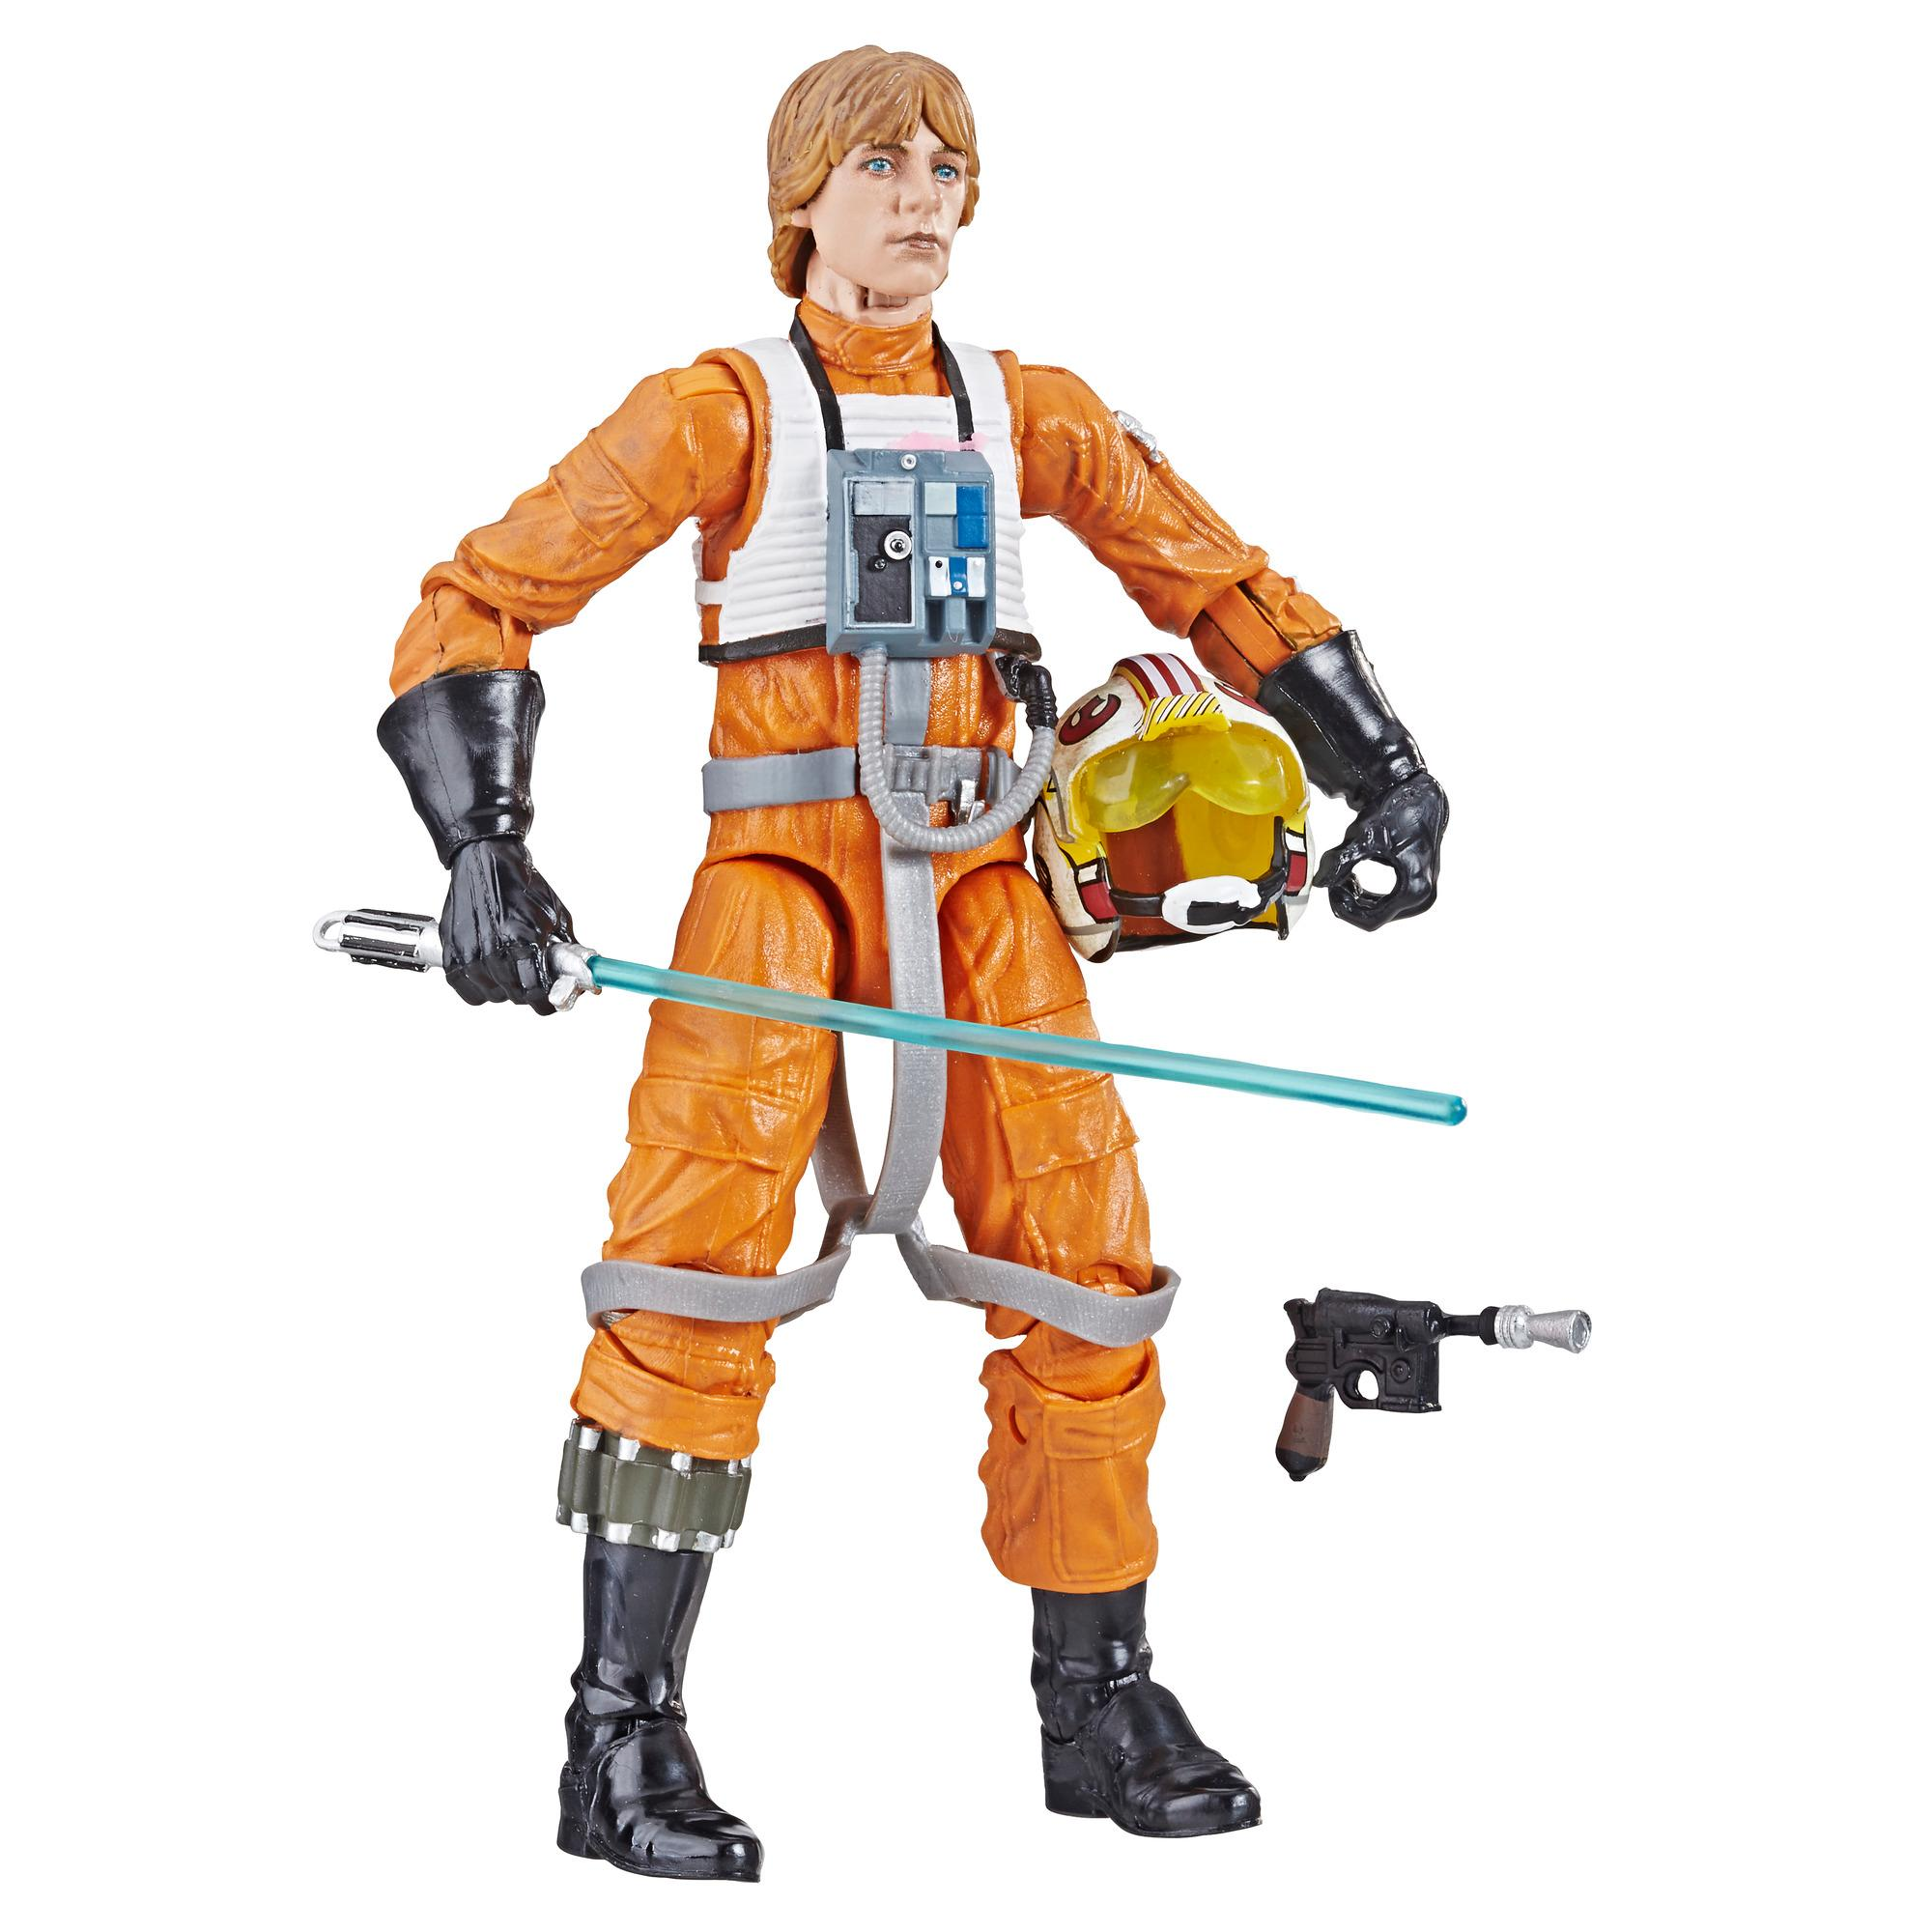 Star Wars The Black Series Archive Luke Skywalker Figure